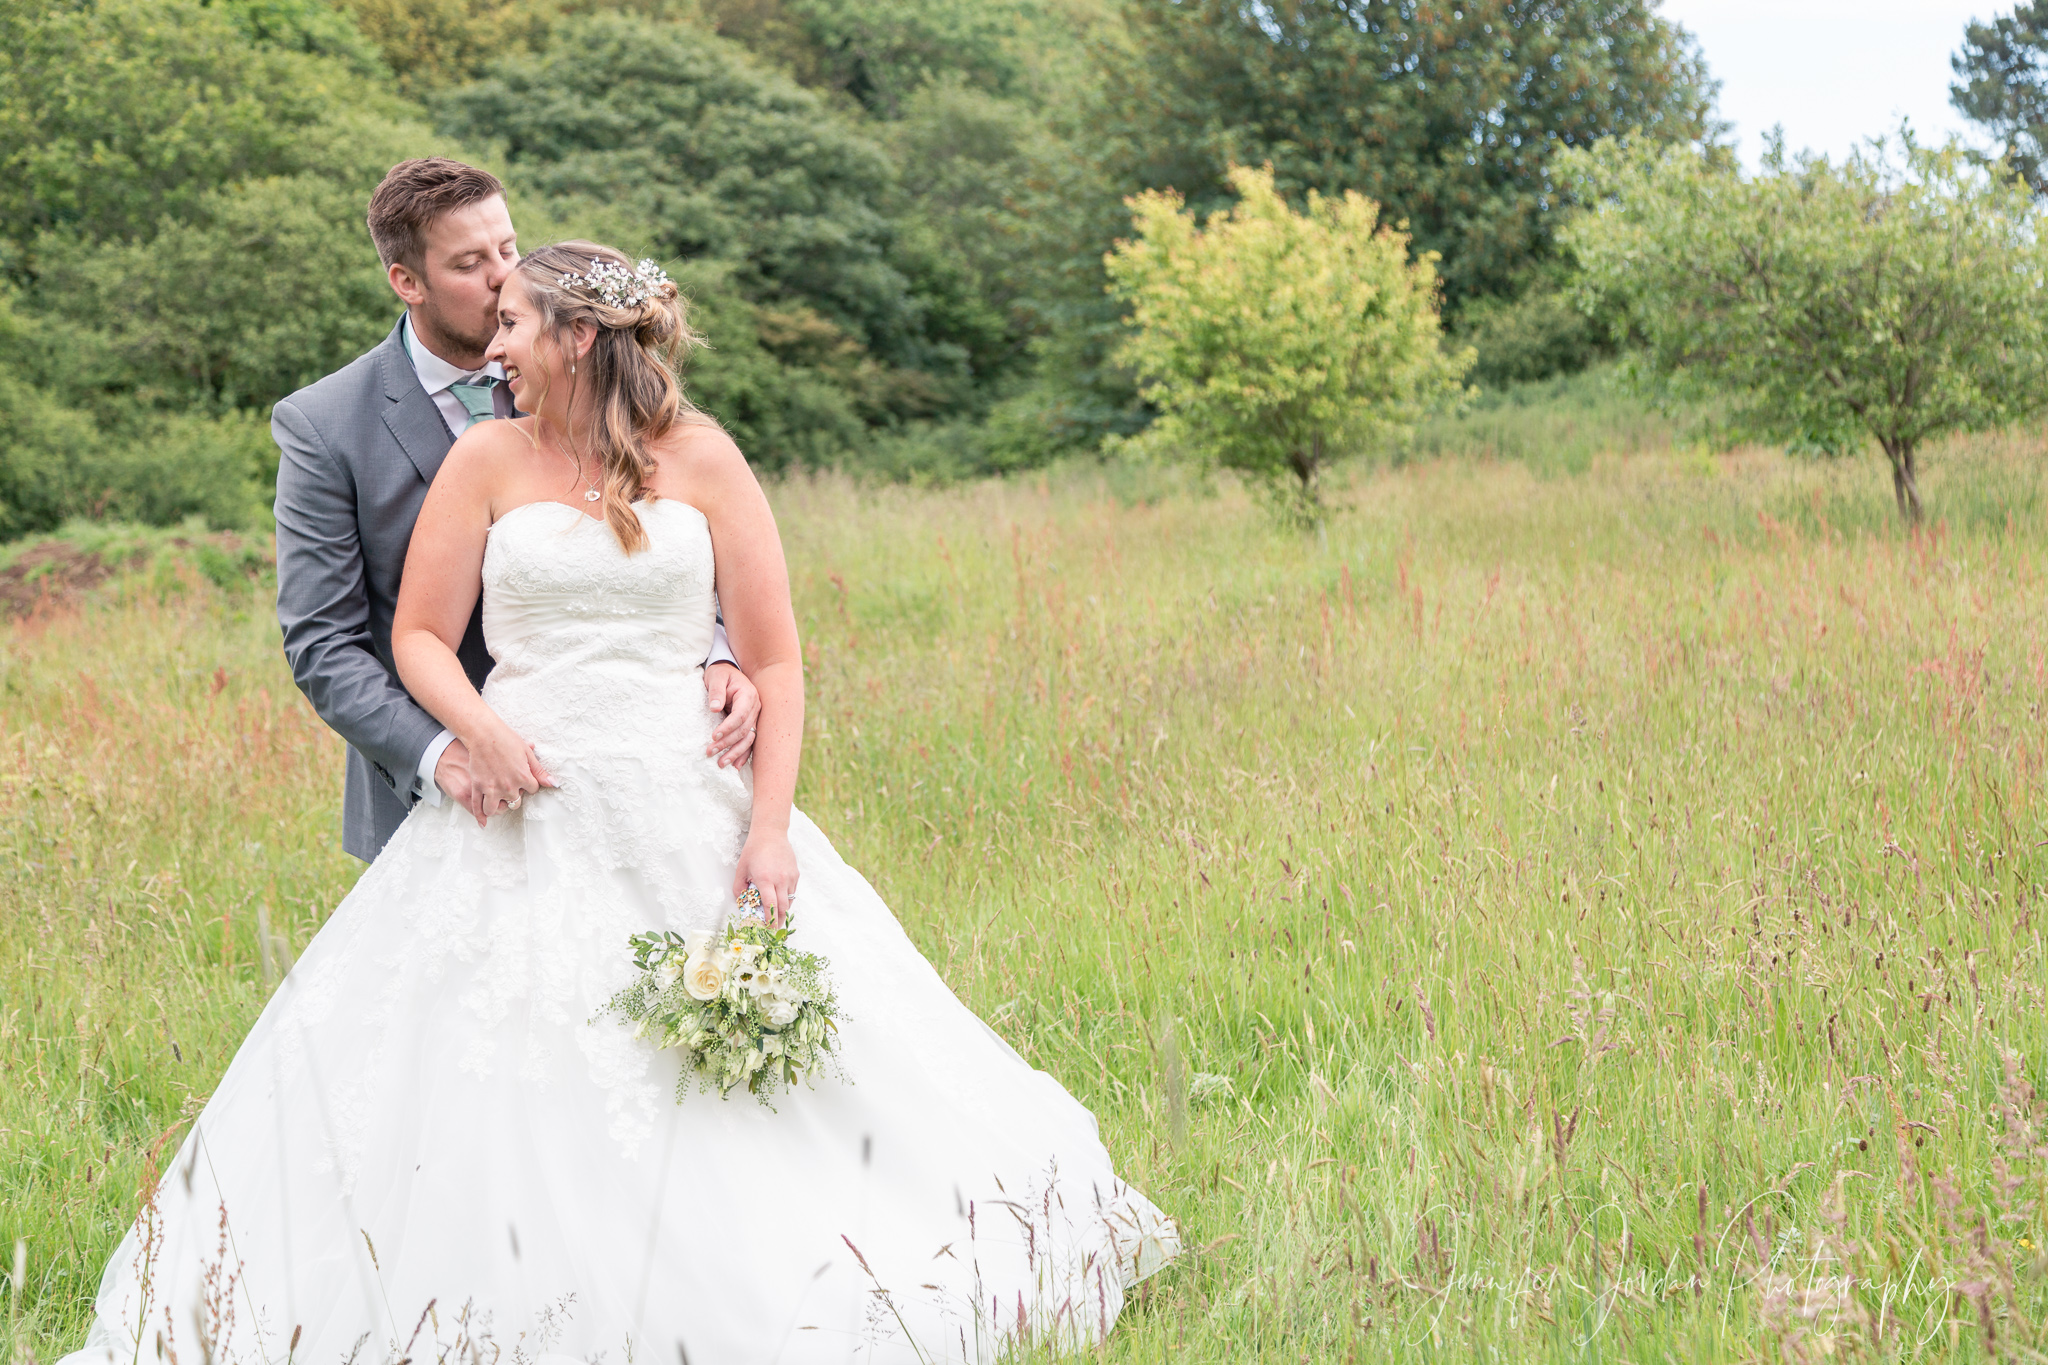 Authentic and natural wedding photography by Jennifer Jordan Photography Cornwallhentic and natural wedding photography by Jennifer Jordan Photography Cornwall